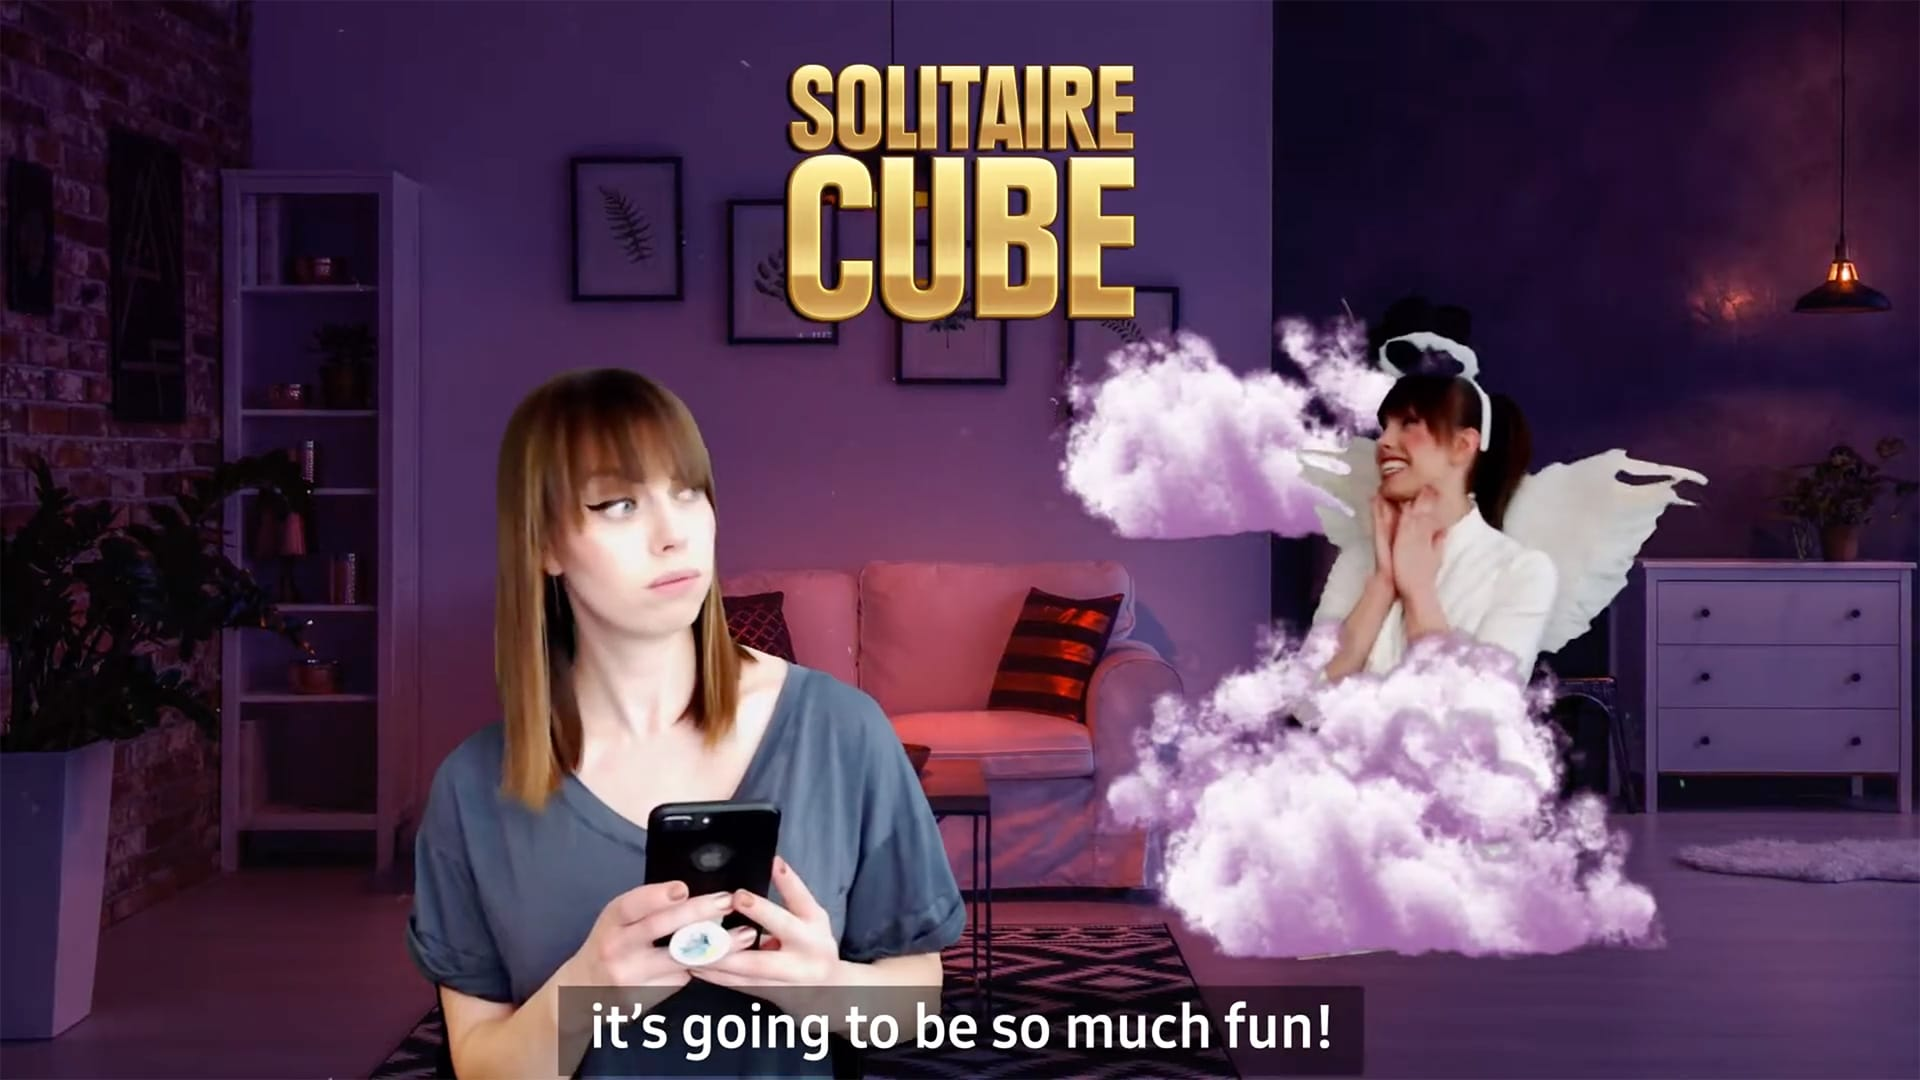 Solitaire Cube influencer produced ad